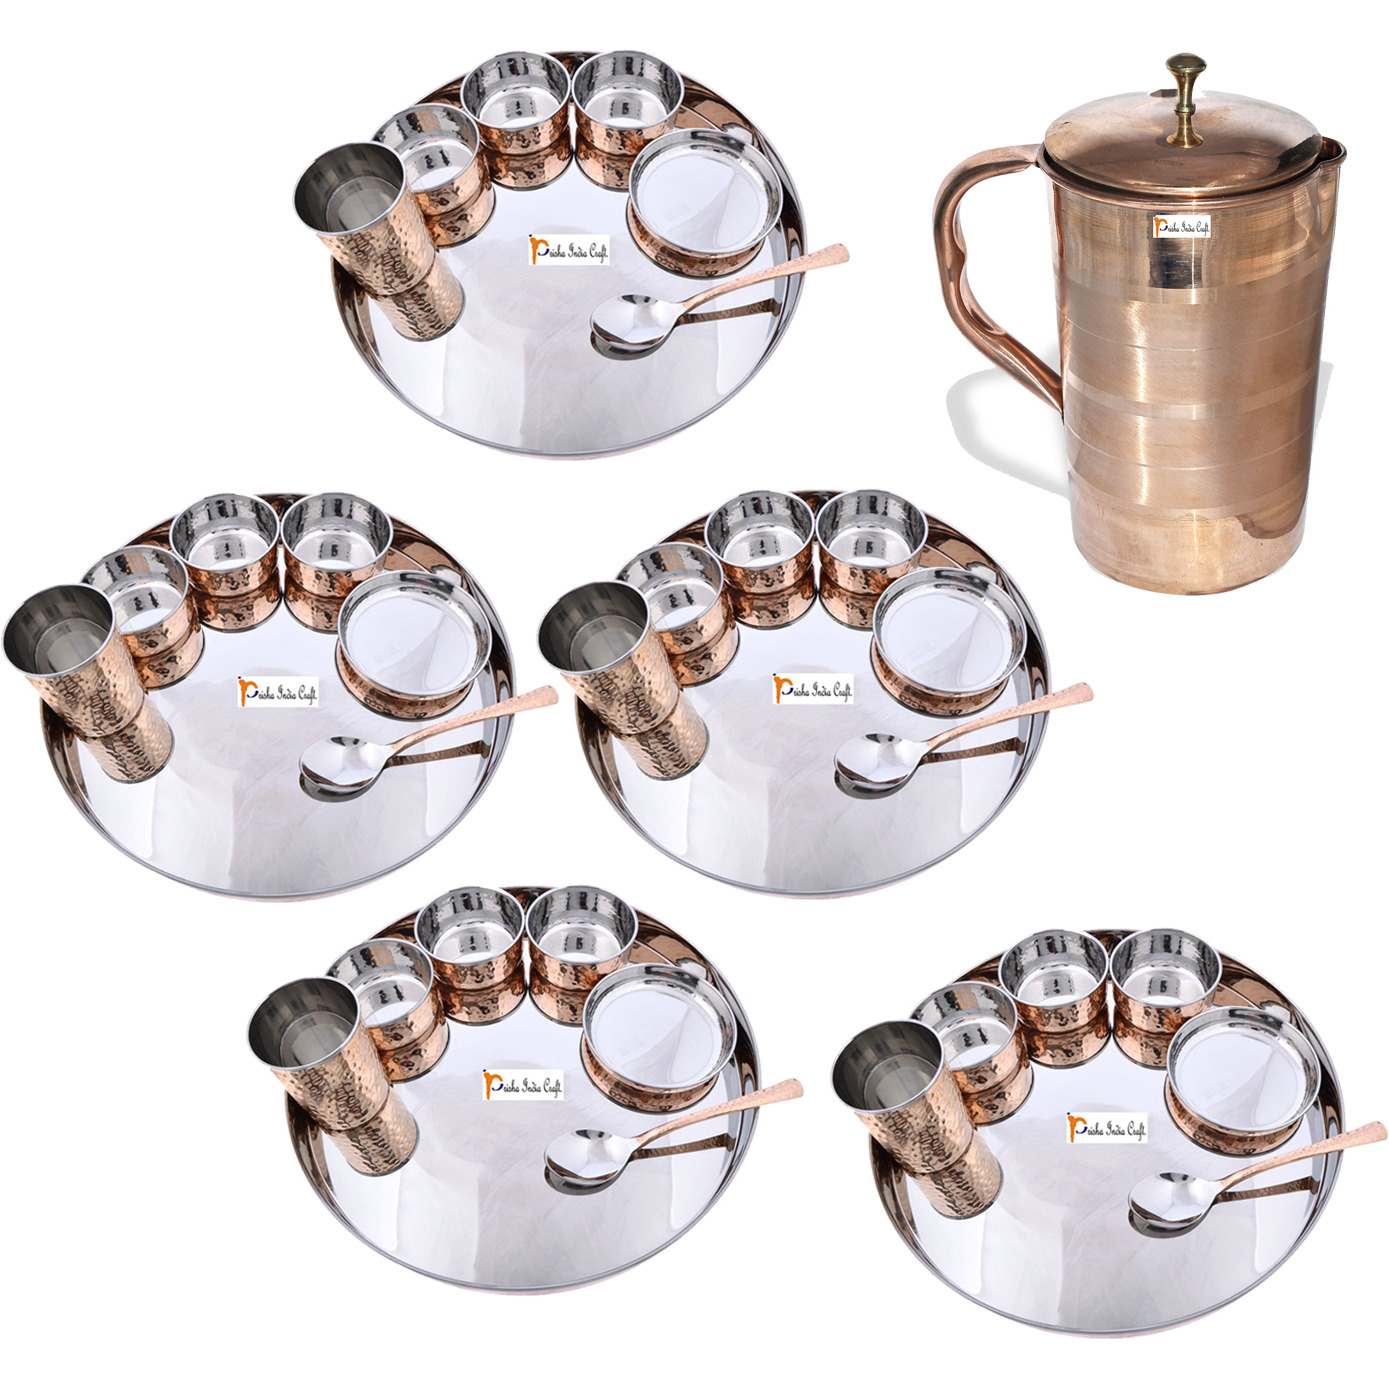 Prisha India Craft B. Set of 5 Dinnerware Traditional Stainless Steel Copper Dinner Set of Thali Plate, Bowls, Glass and Spoon, Dia 13  With 1 Luxury Style Pure Copper Pitcher Jug - Christmas Gift